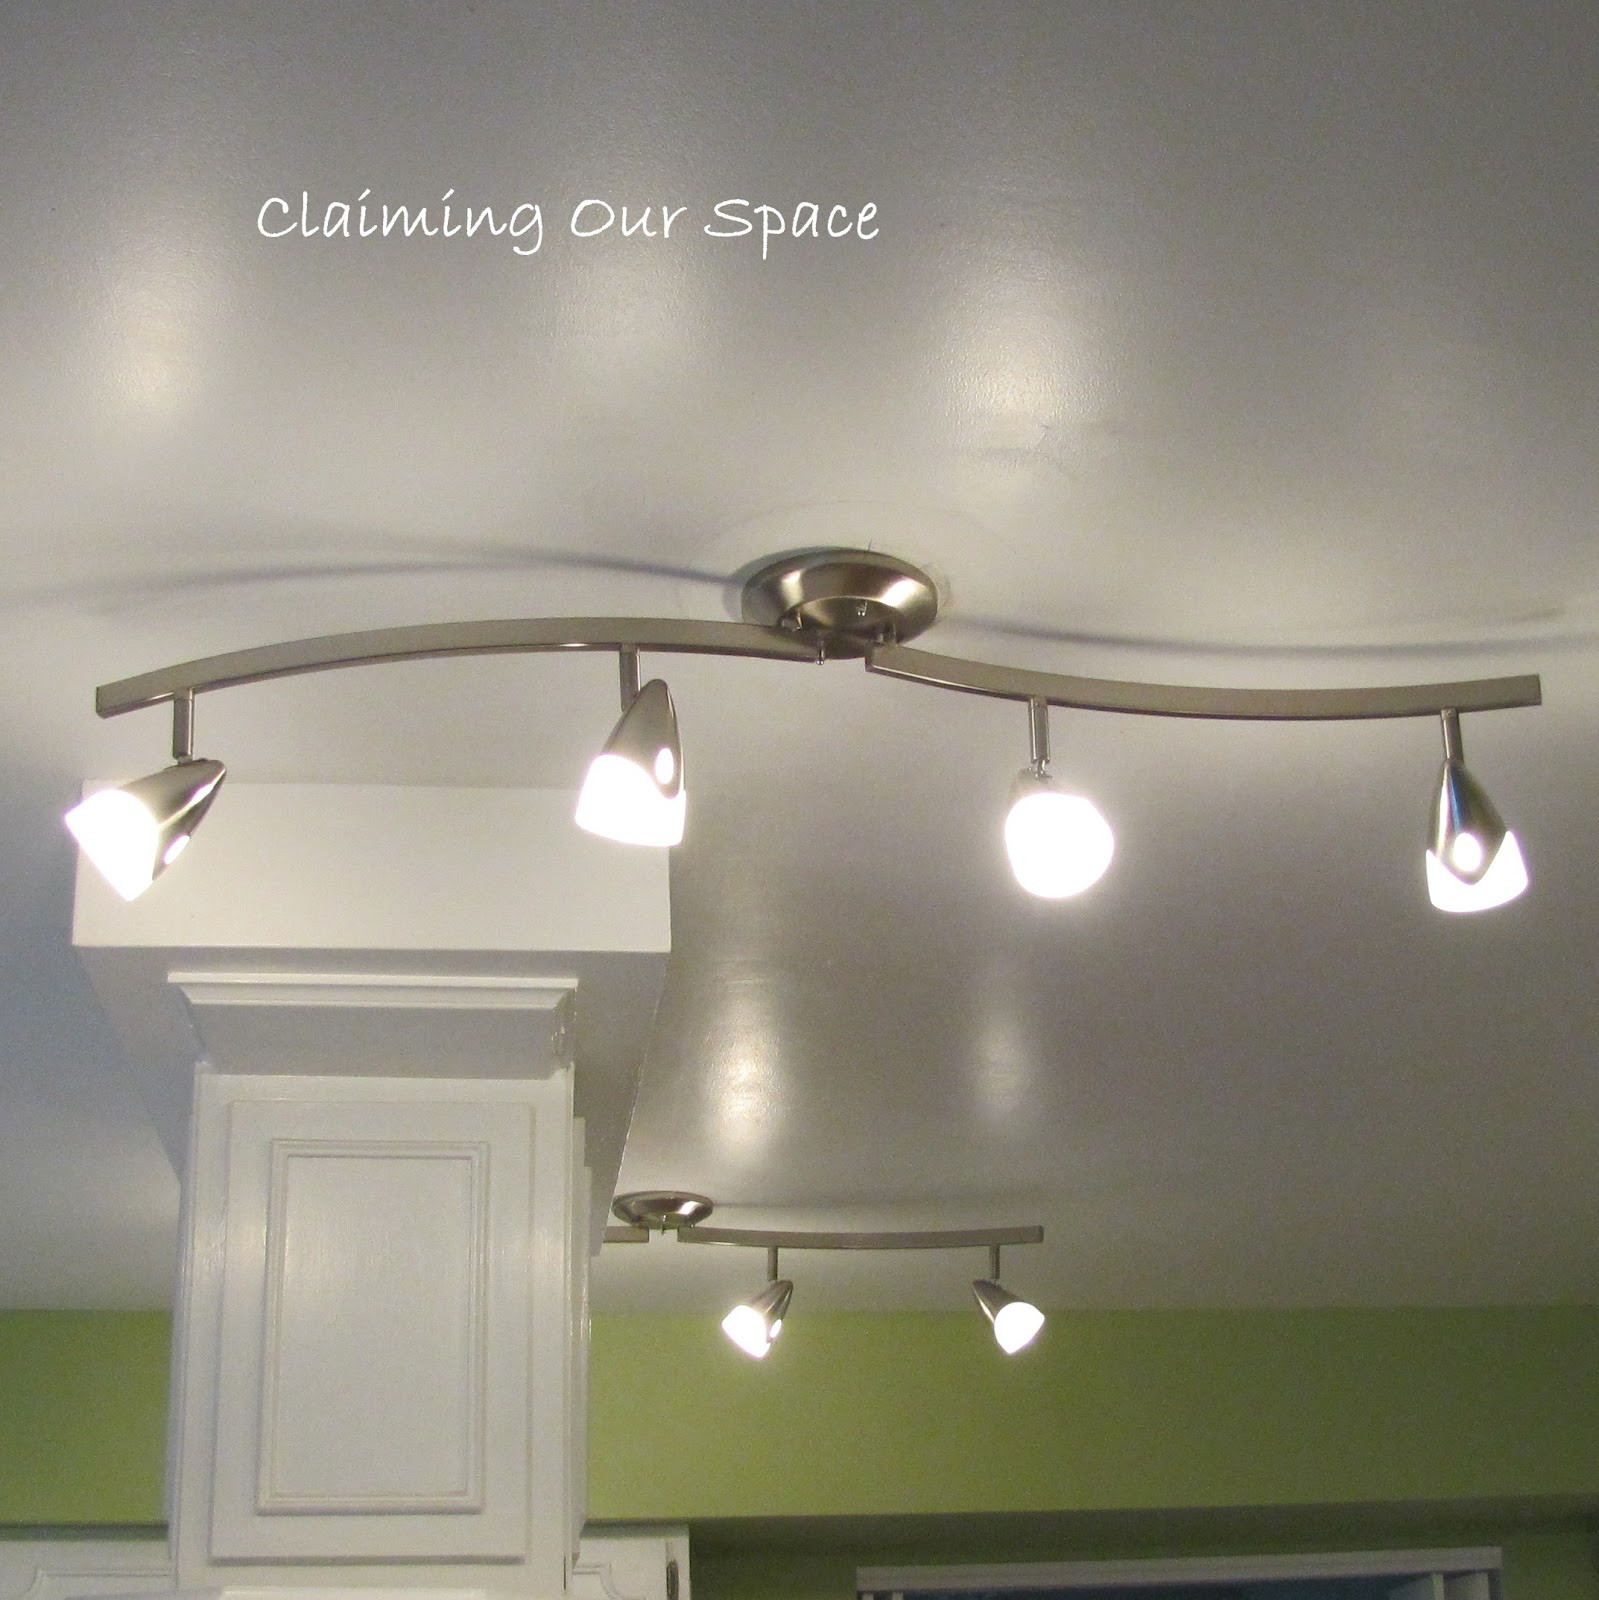 Best ideas about Ceiling Lights For Kitchen . Save or Pin TOP 10 Modern kitchen ceiling lights 2019 Now.